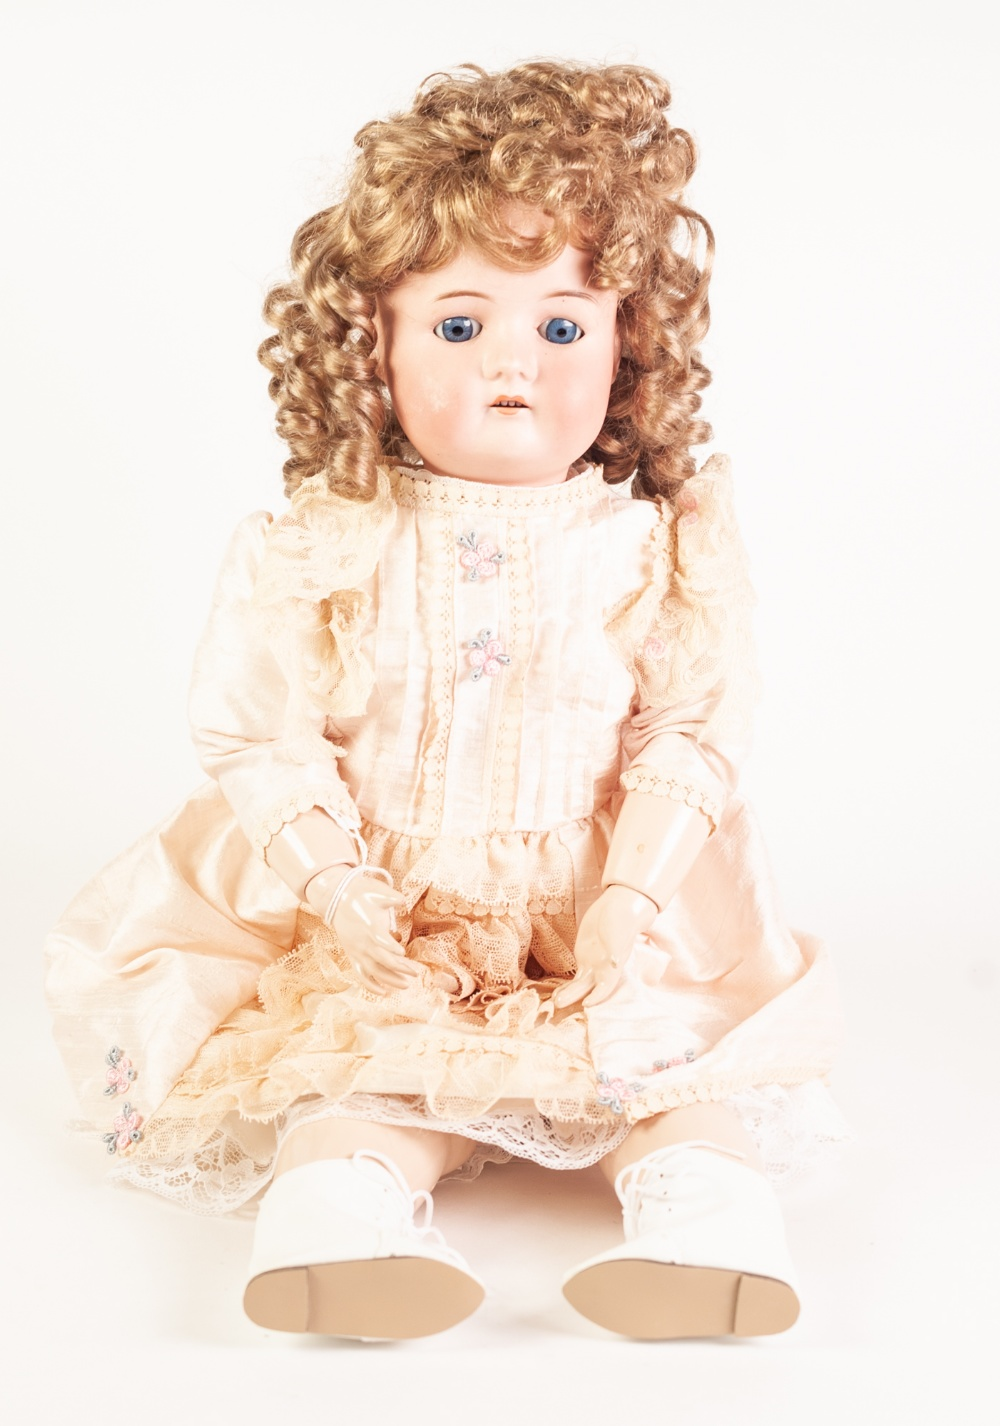 Lot 303 - A GERMAN BISQUE HEAD DOLL, with fixed blue eyes and open mouth, on later ball jointed composition